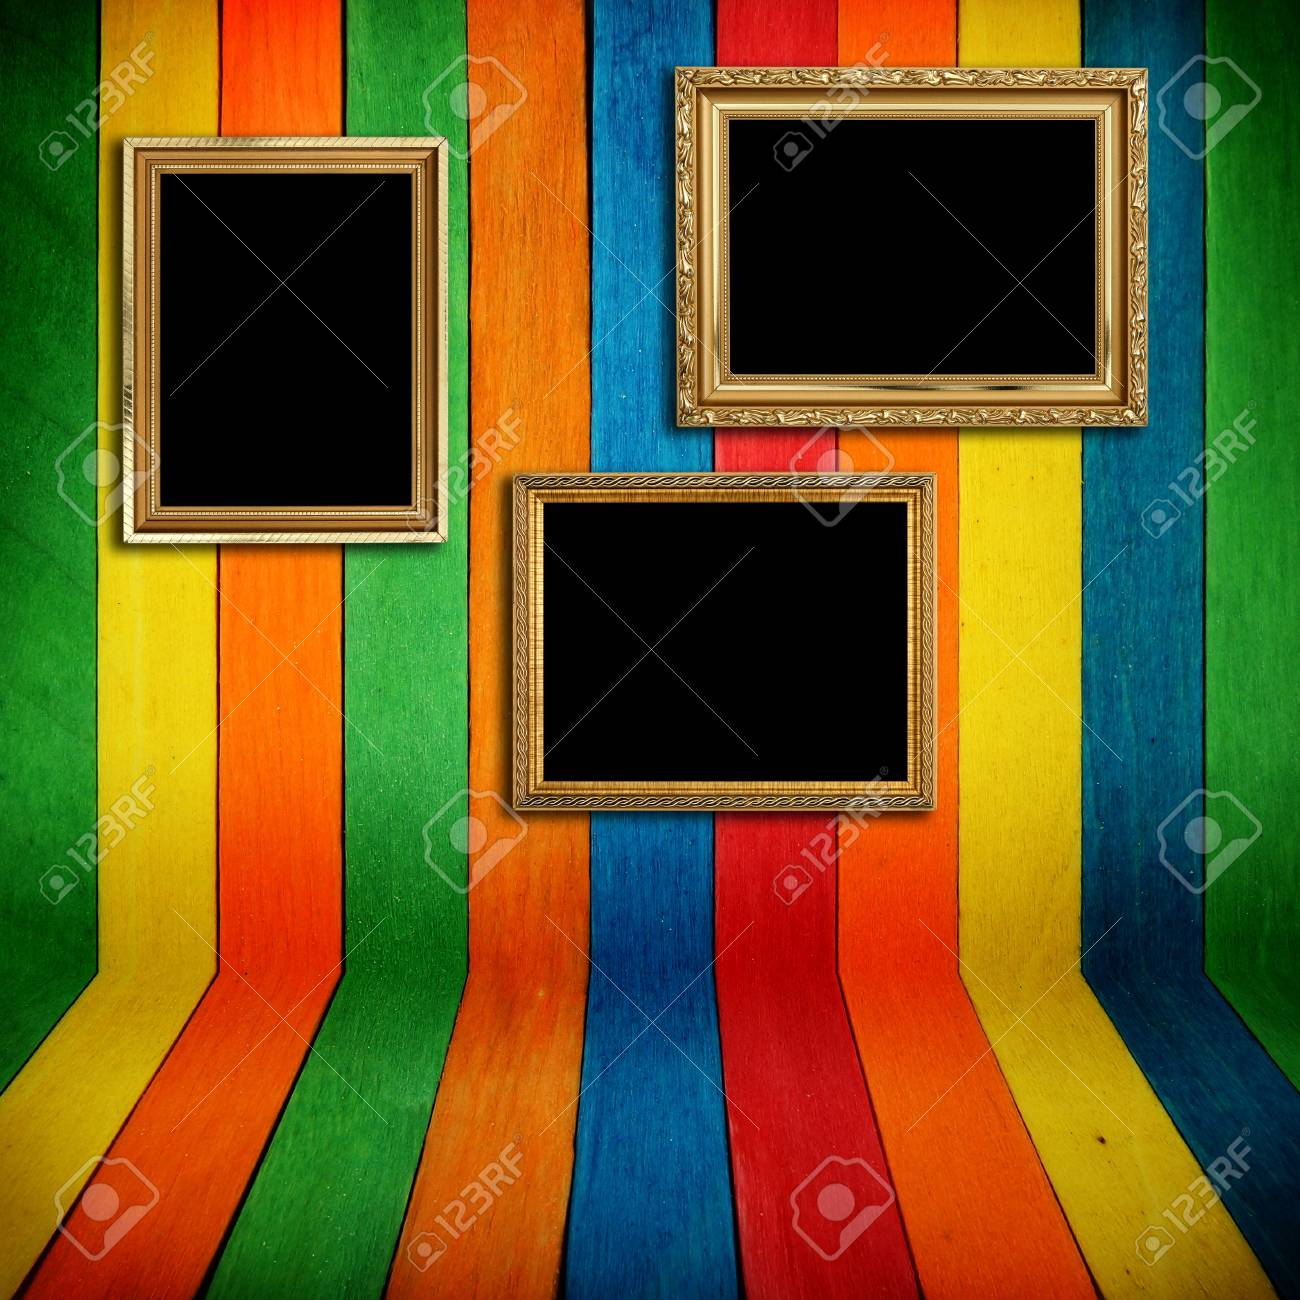 Gold frame on colorful wood Background Stock Photo - 13123109